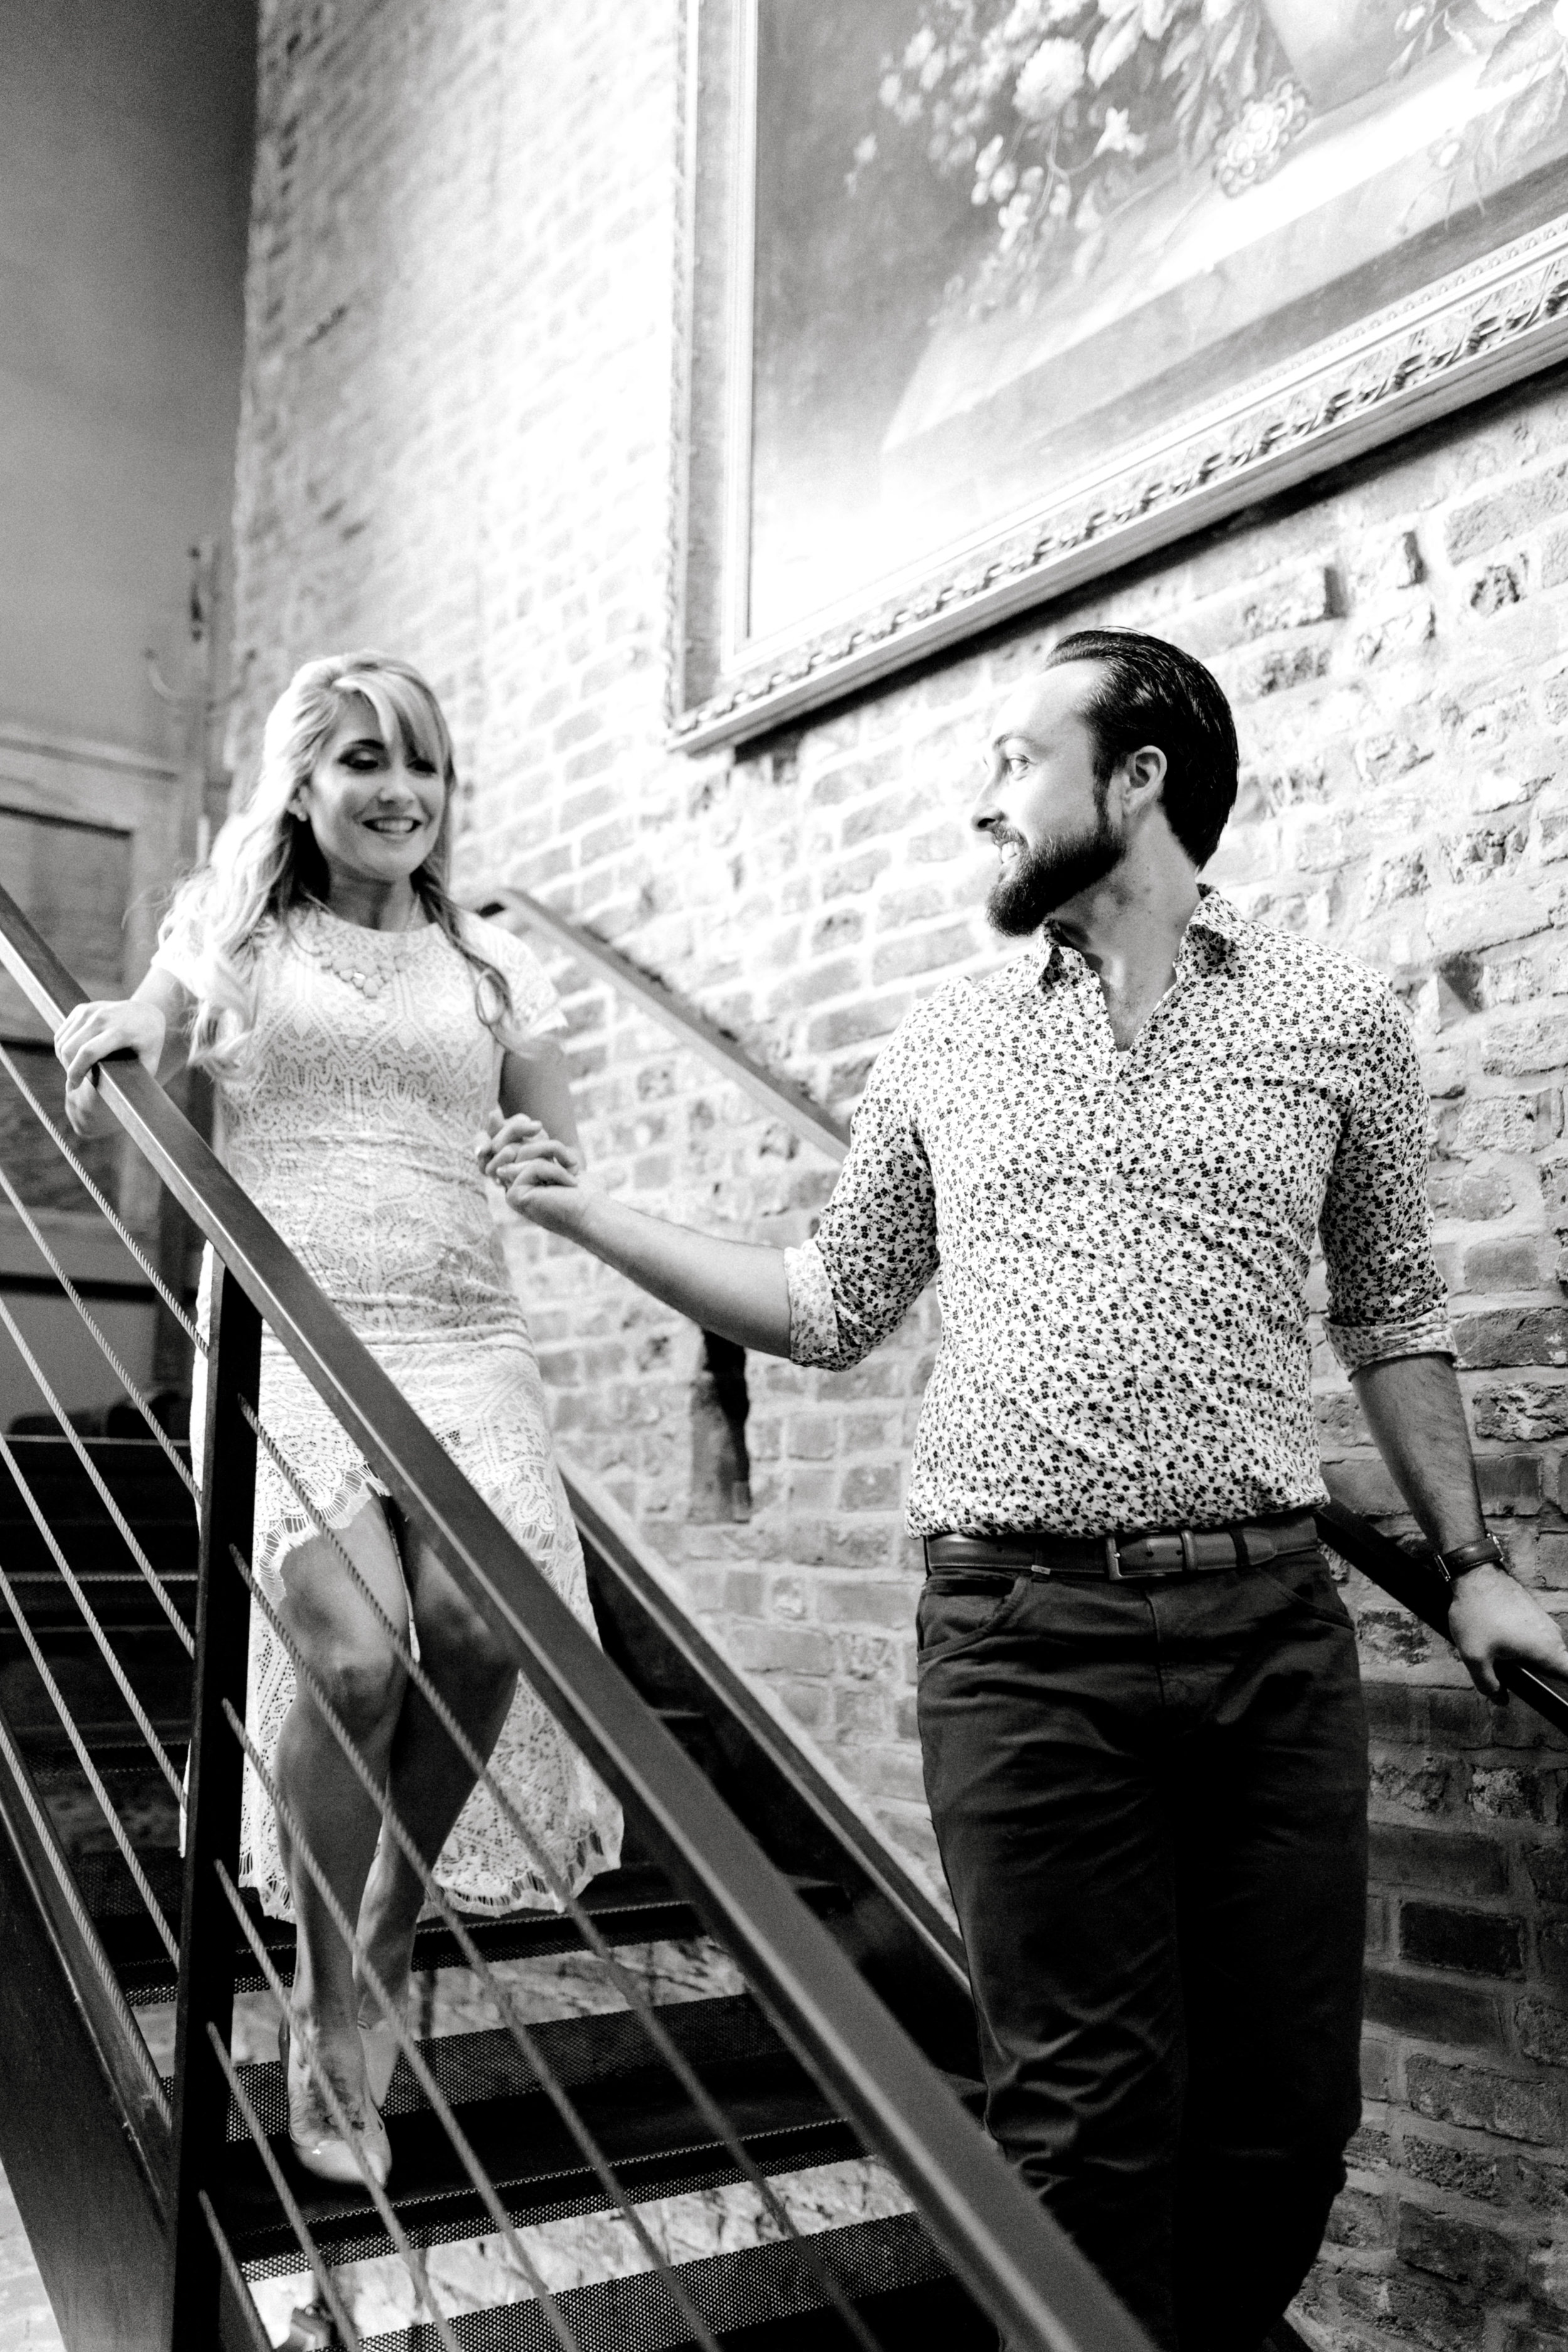 A fun little moment as Dale helps Nikki down the stairs of the Revolution House bar in Old City, Philadelphia for their bright and romantic engagement session.